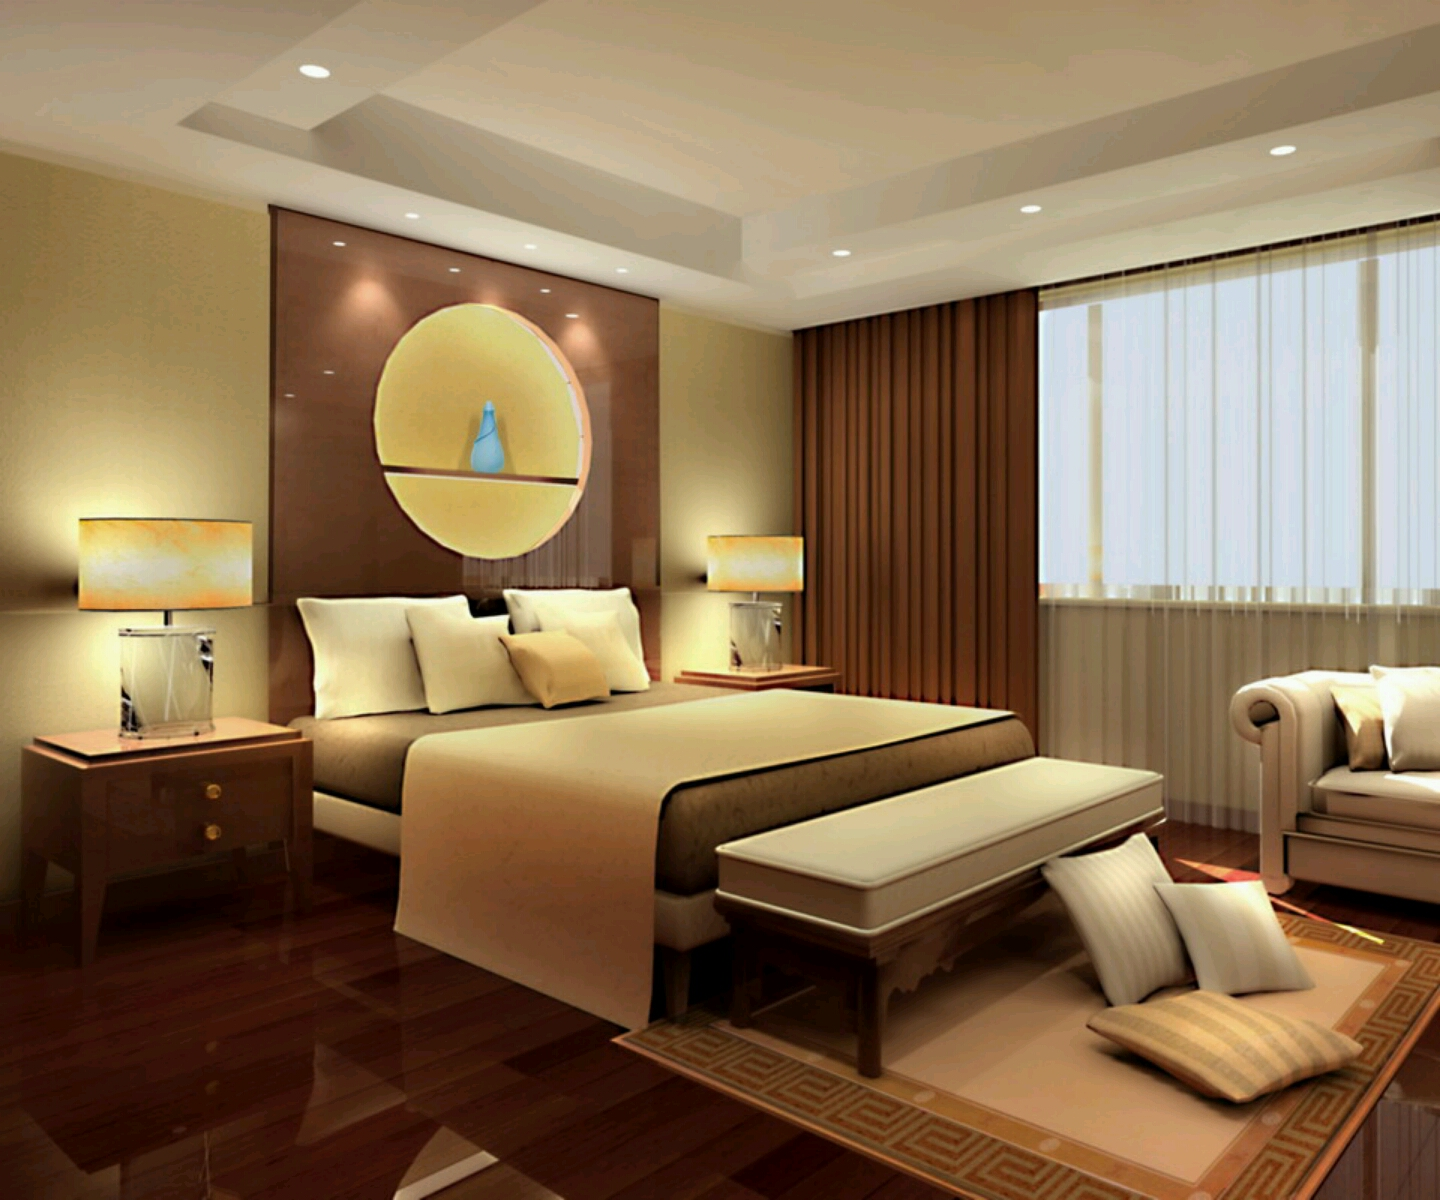 New home designs latest modern beautiful bedrooms for Bedroom design gallery